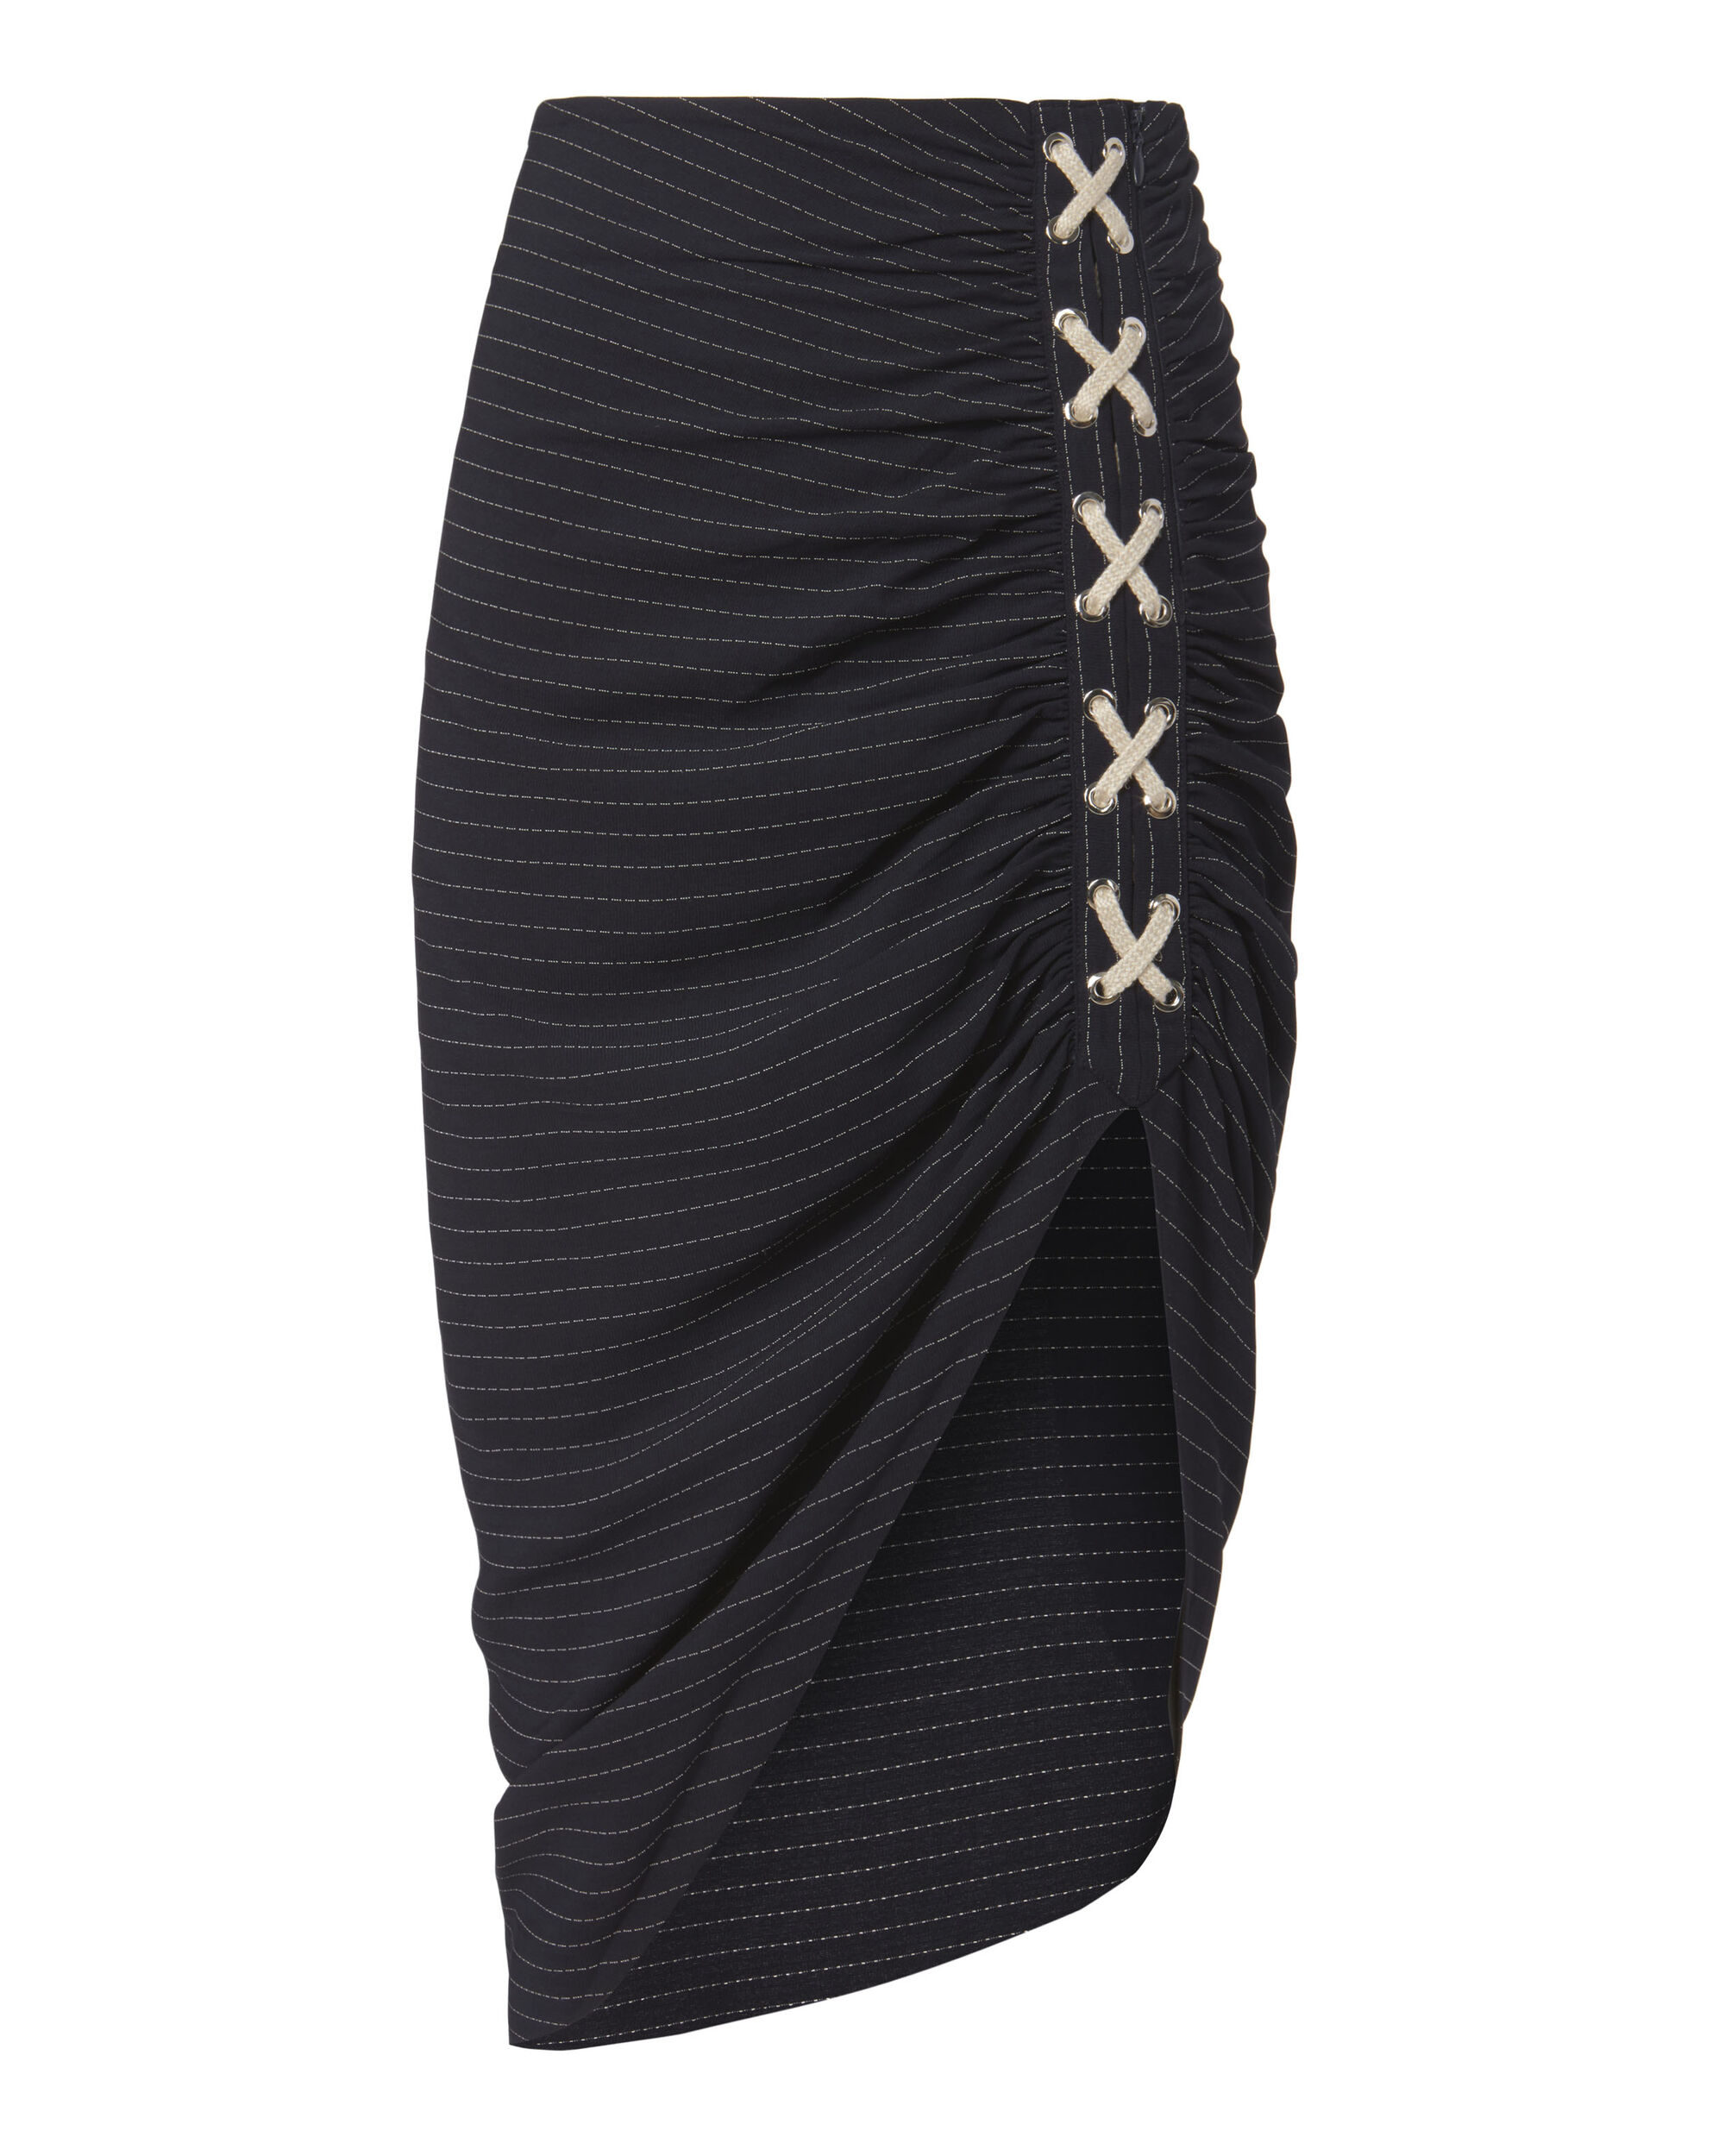 Marlow Lace-Up Ruched Skirt, NAVY, hi-res